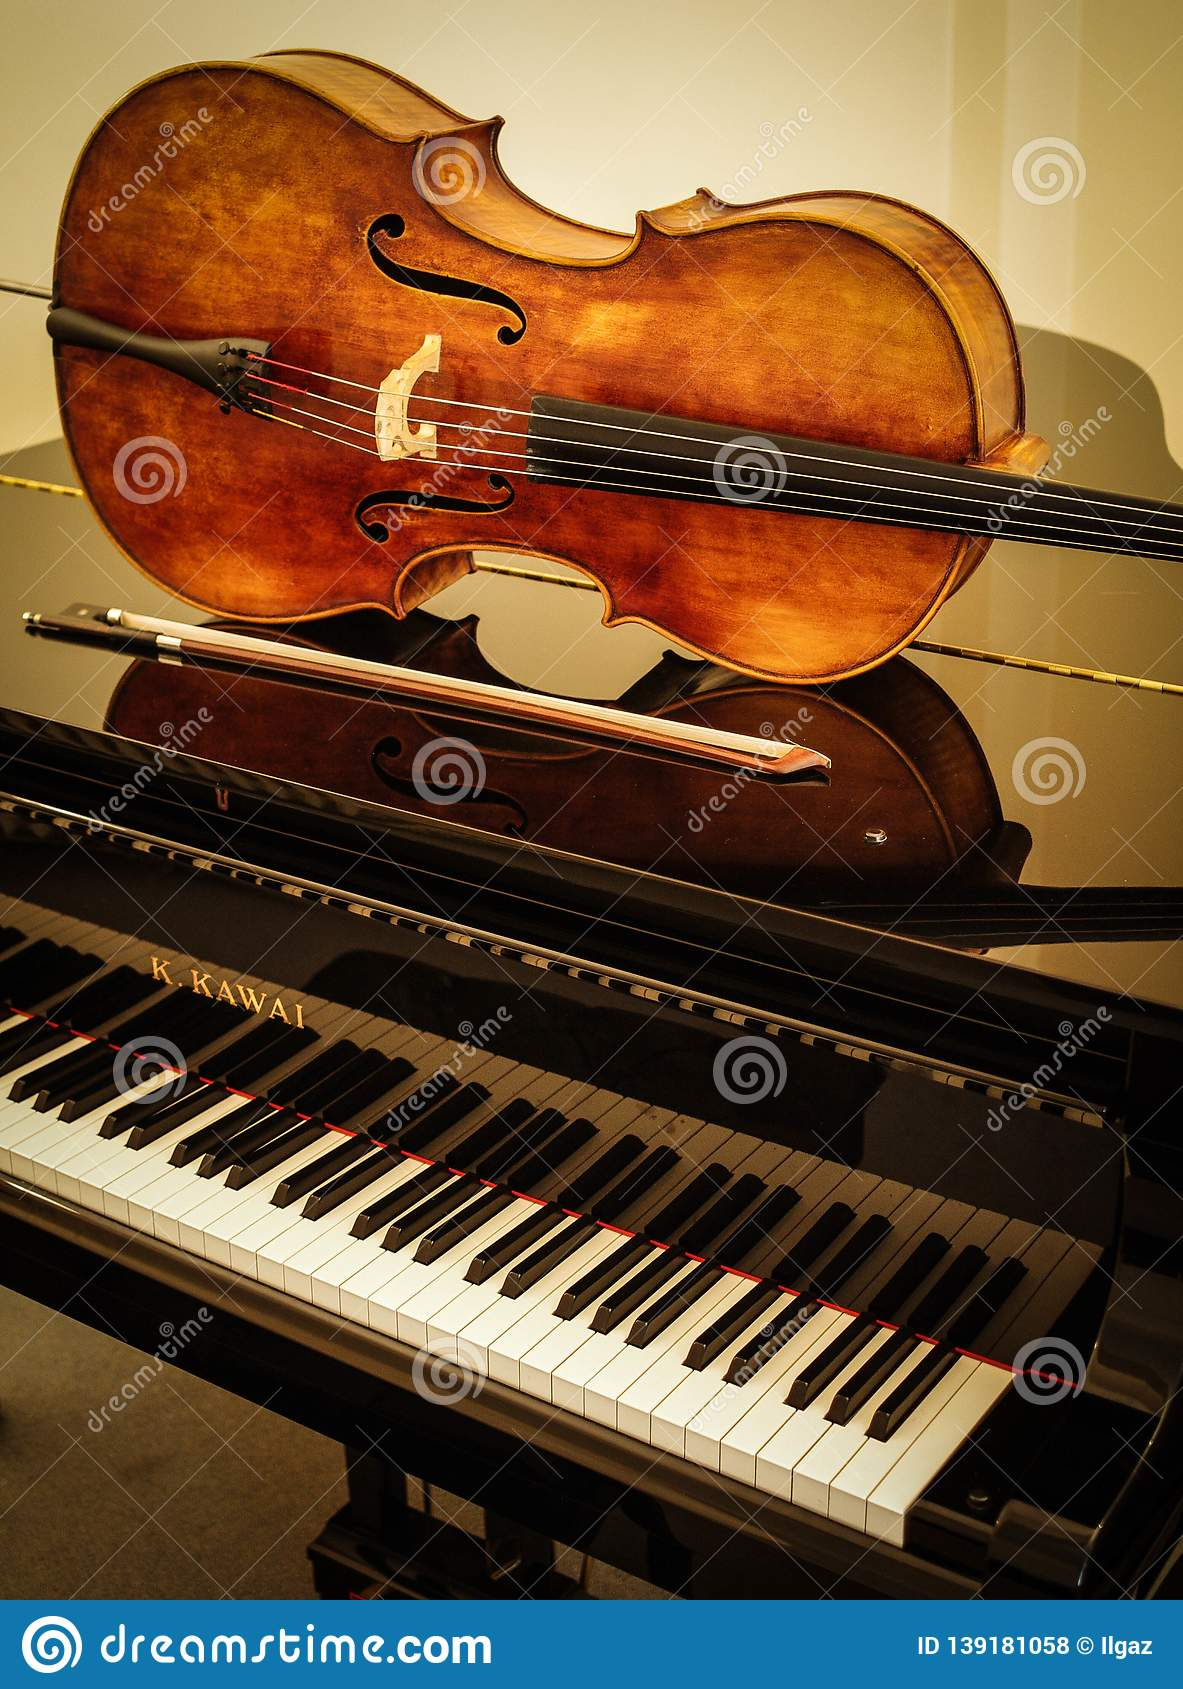 Old wooden Cello and bow on grand piano with cream background